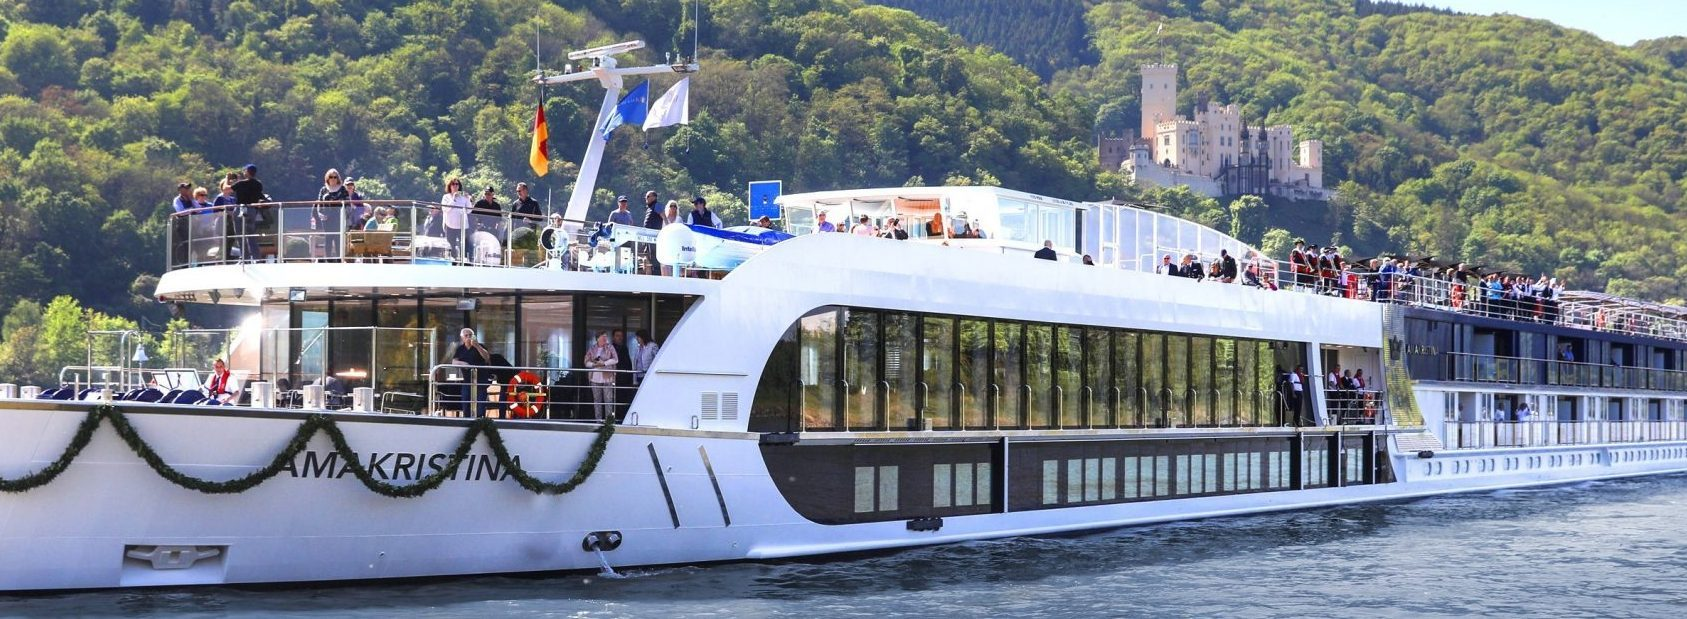 AmaWaterways Amakristina Ship